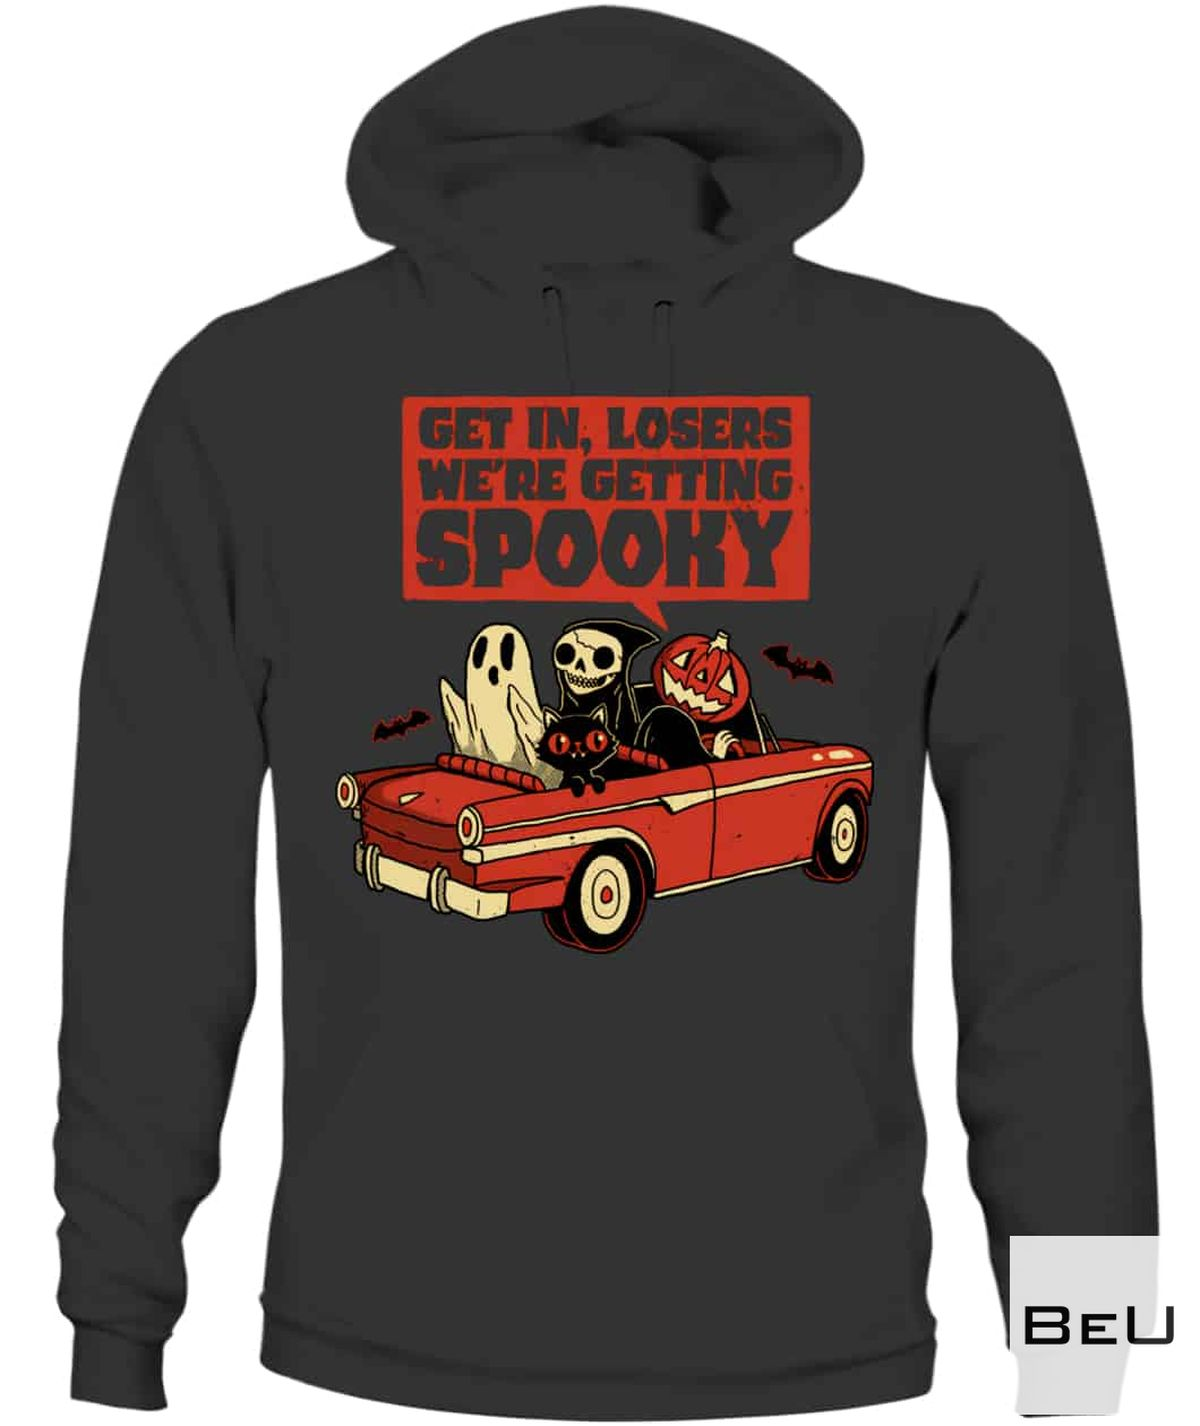 Where To Buy Get In Loser We're Getting Spoonky Shirt